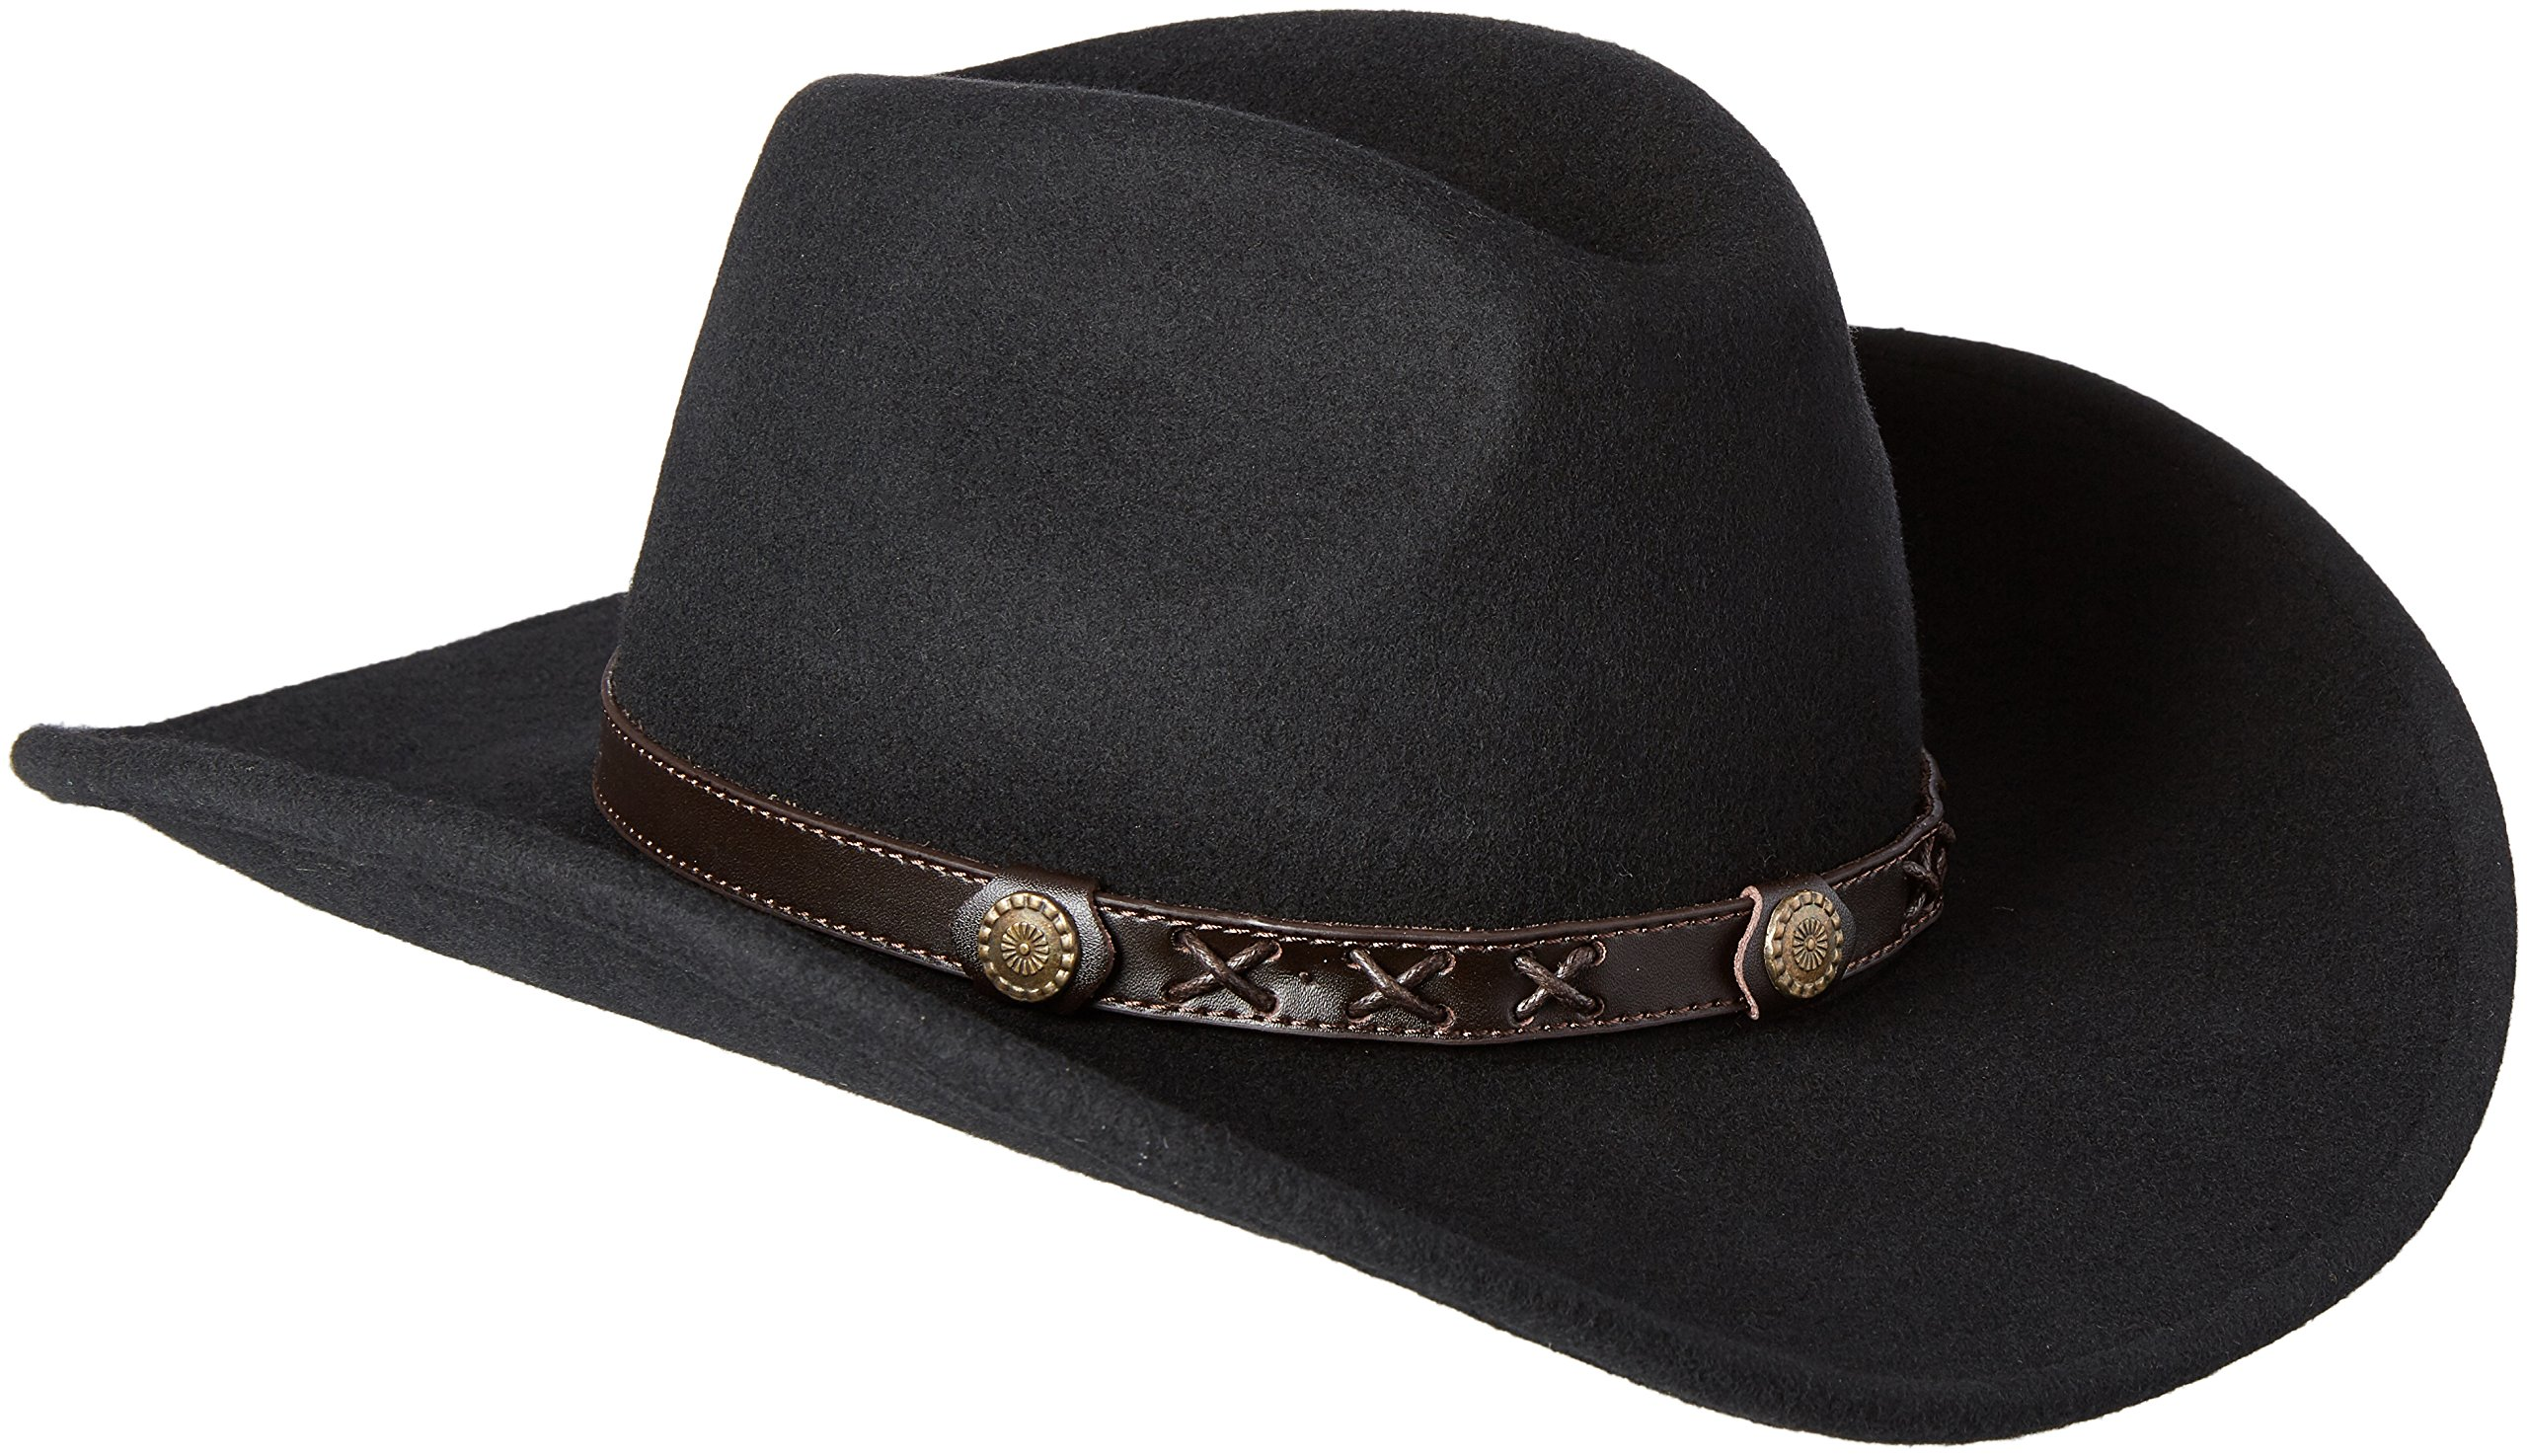 625a0fa8f4a Best Rated in Men s Cowboy Hats   Helpful Customer Reviews - Amazon.com